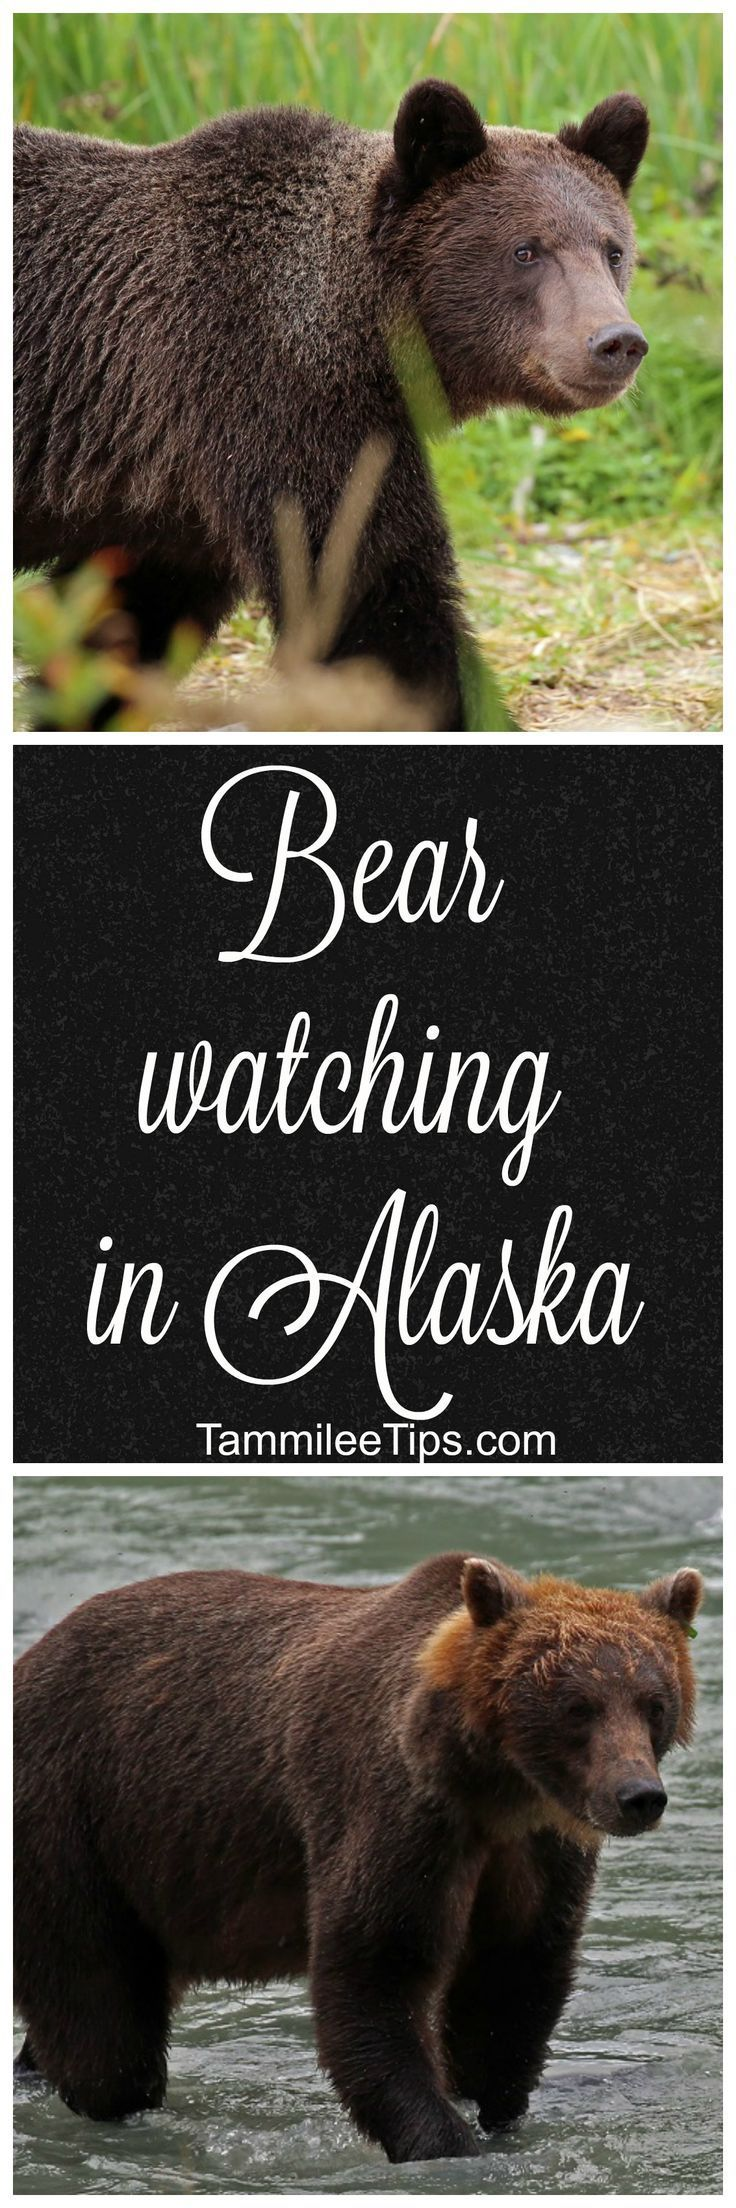 See Grizzly Bears on the Wildlife Expedition in Skagway on an Alaska Cruise via /tammileetips/